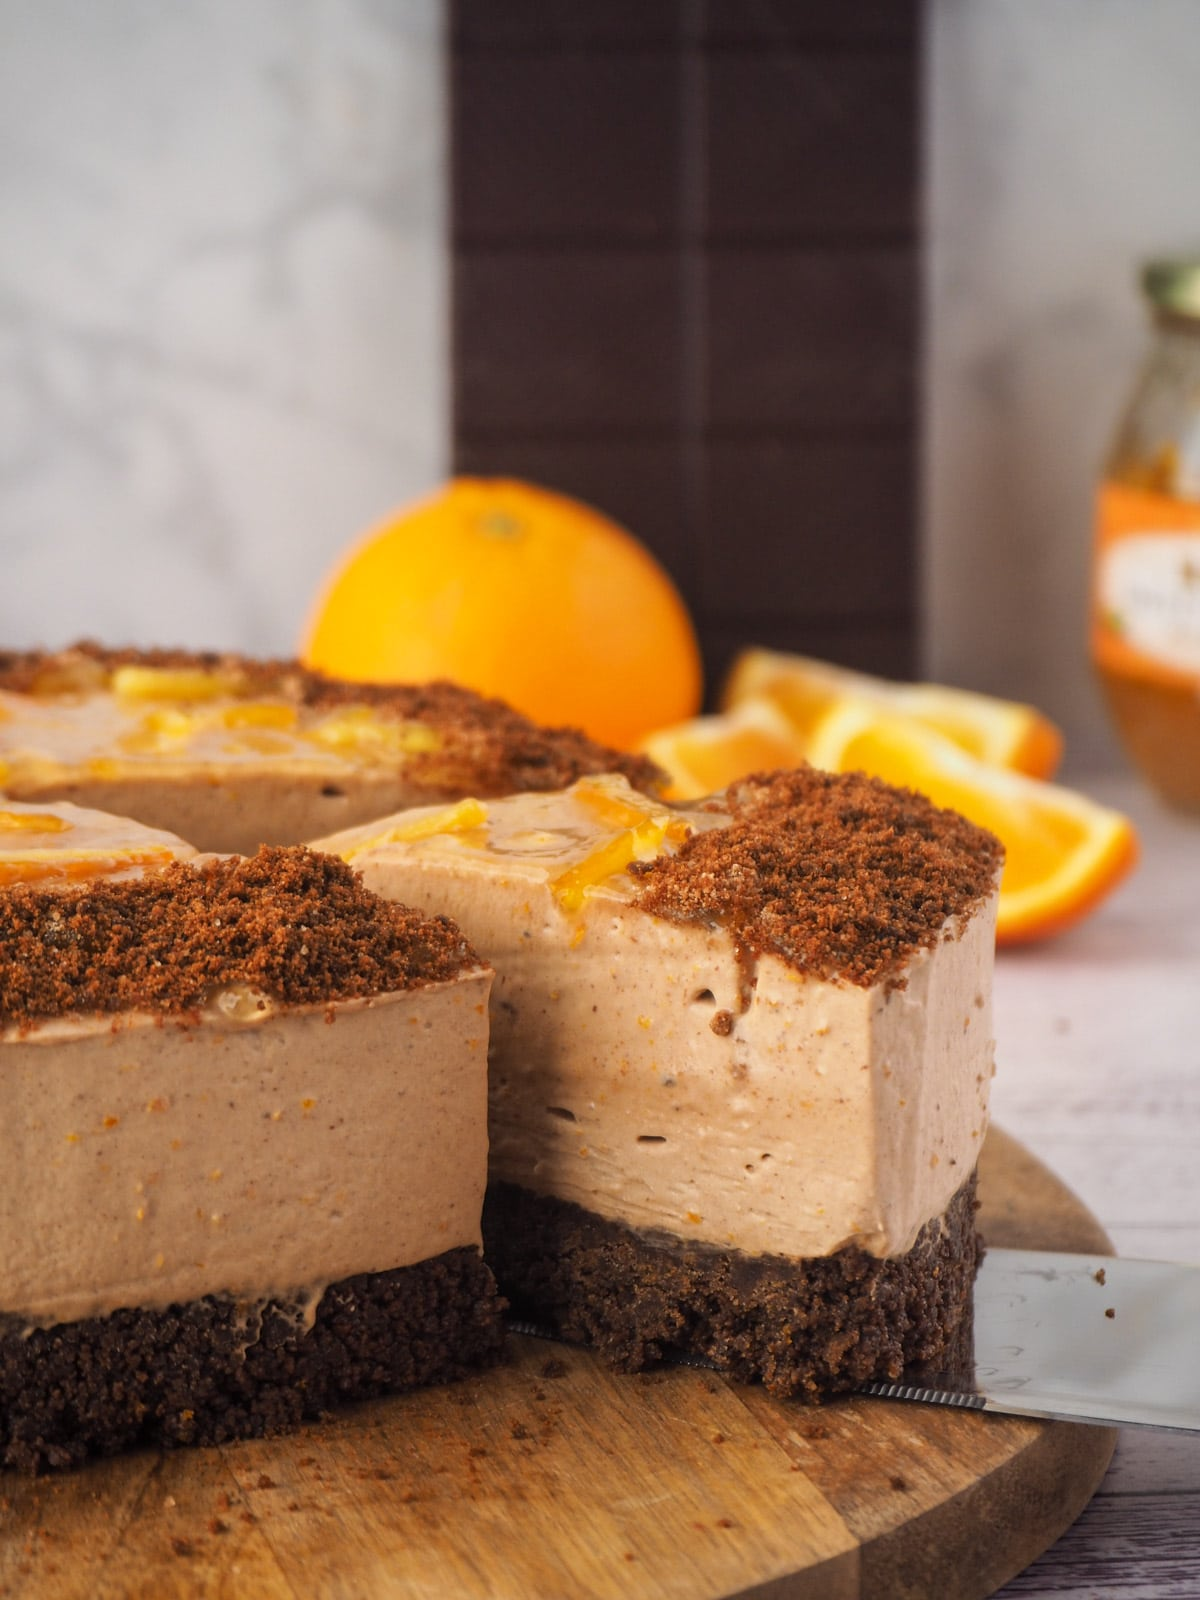 Serving a slice of cheesecake with fresh oranges and dark chocolate in the background.